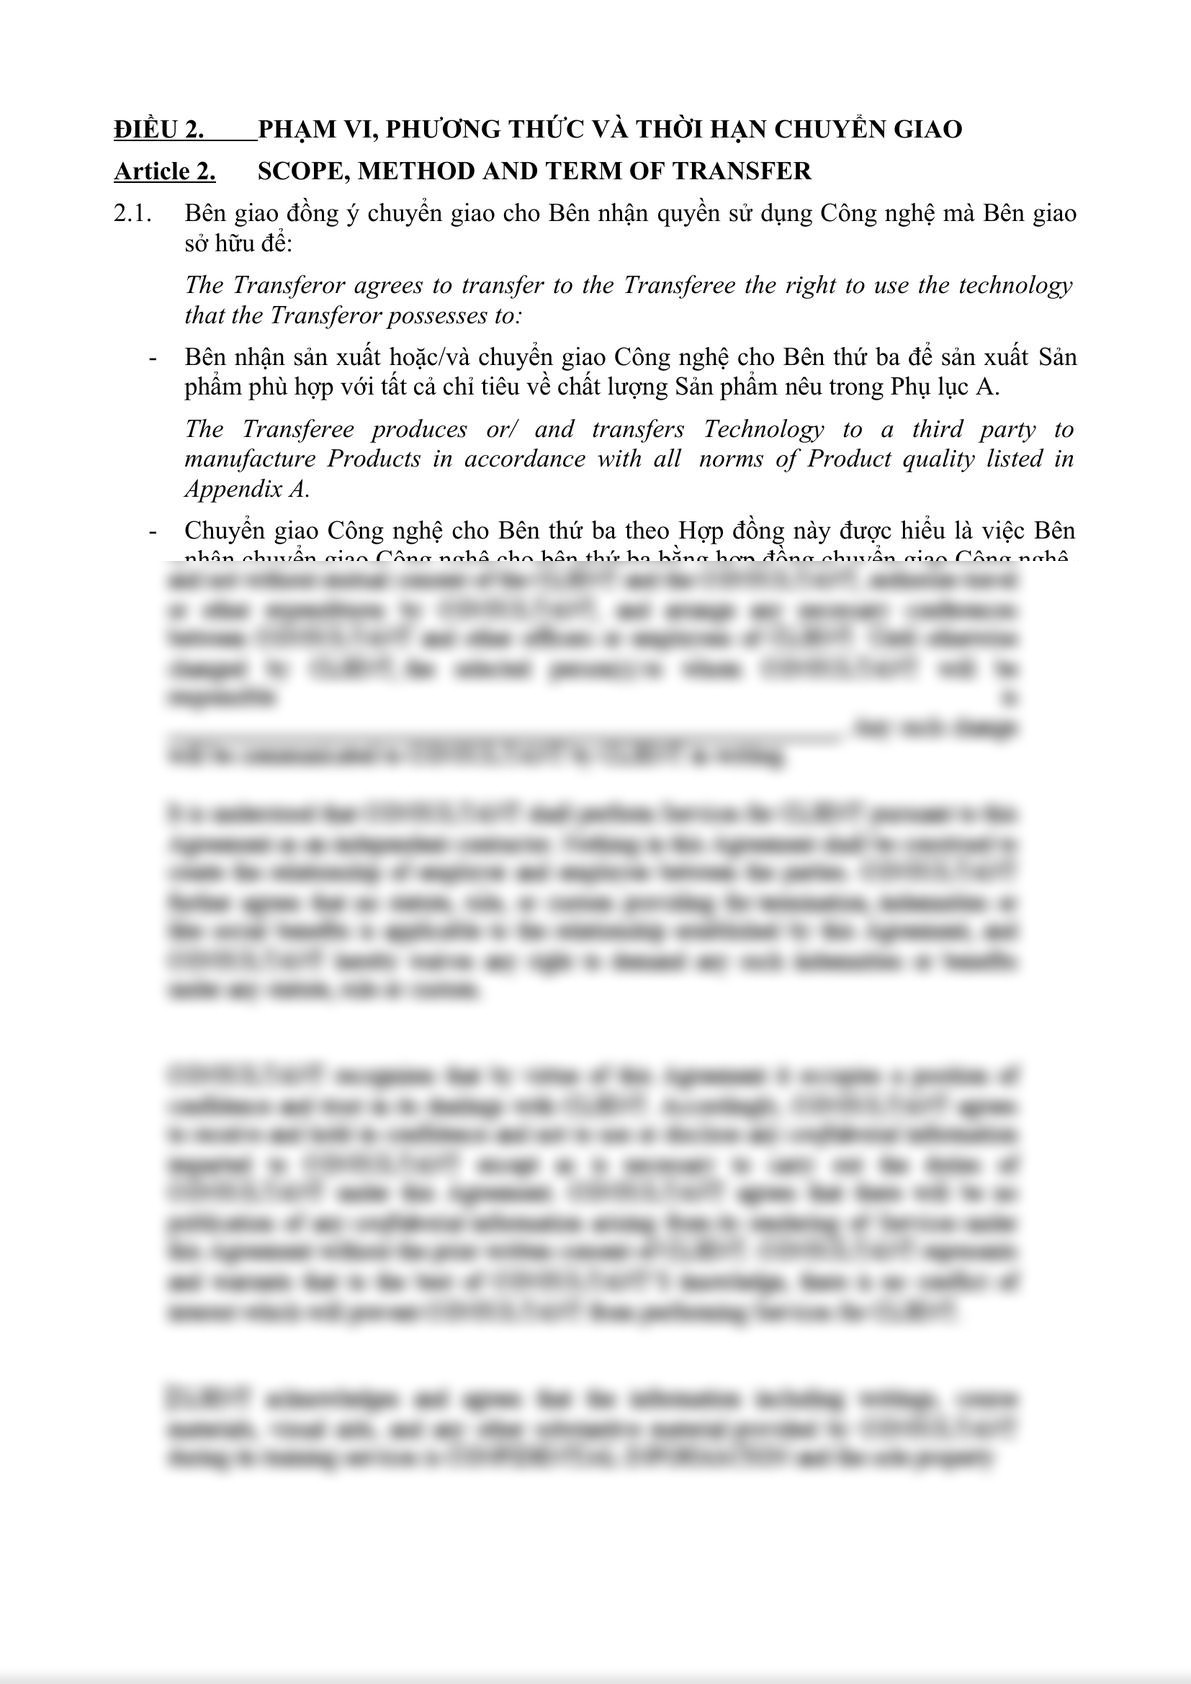 TECHNOLOGY TRANSFER AGREEMENT-2